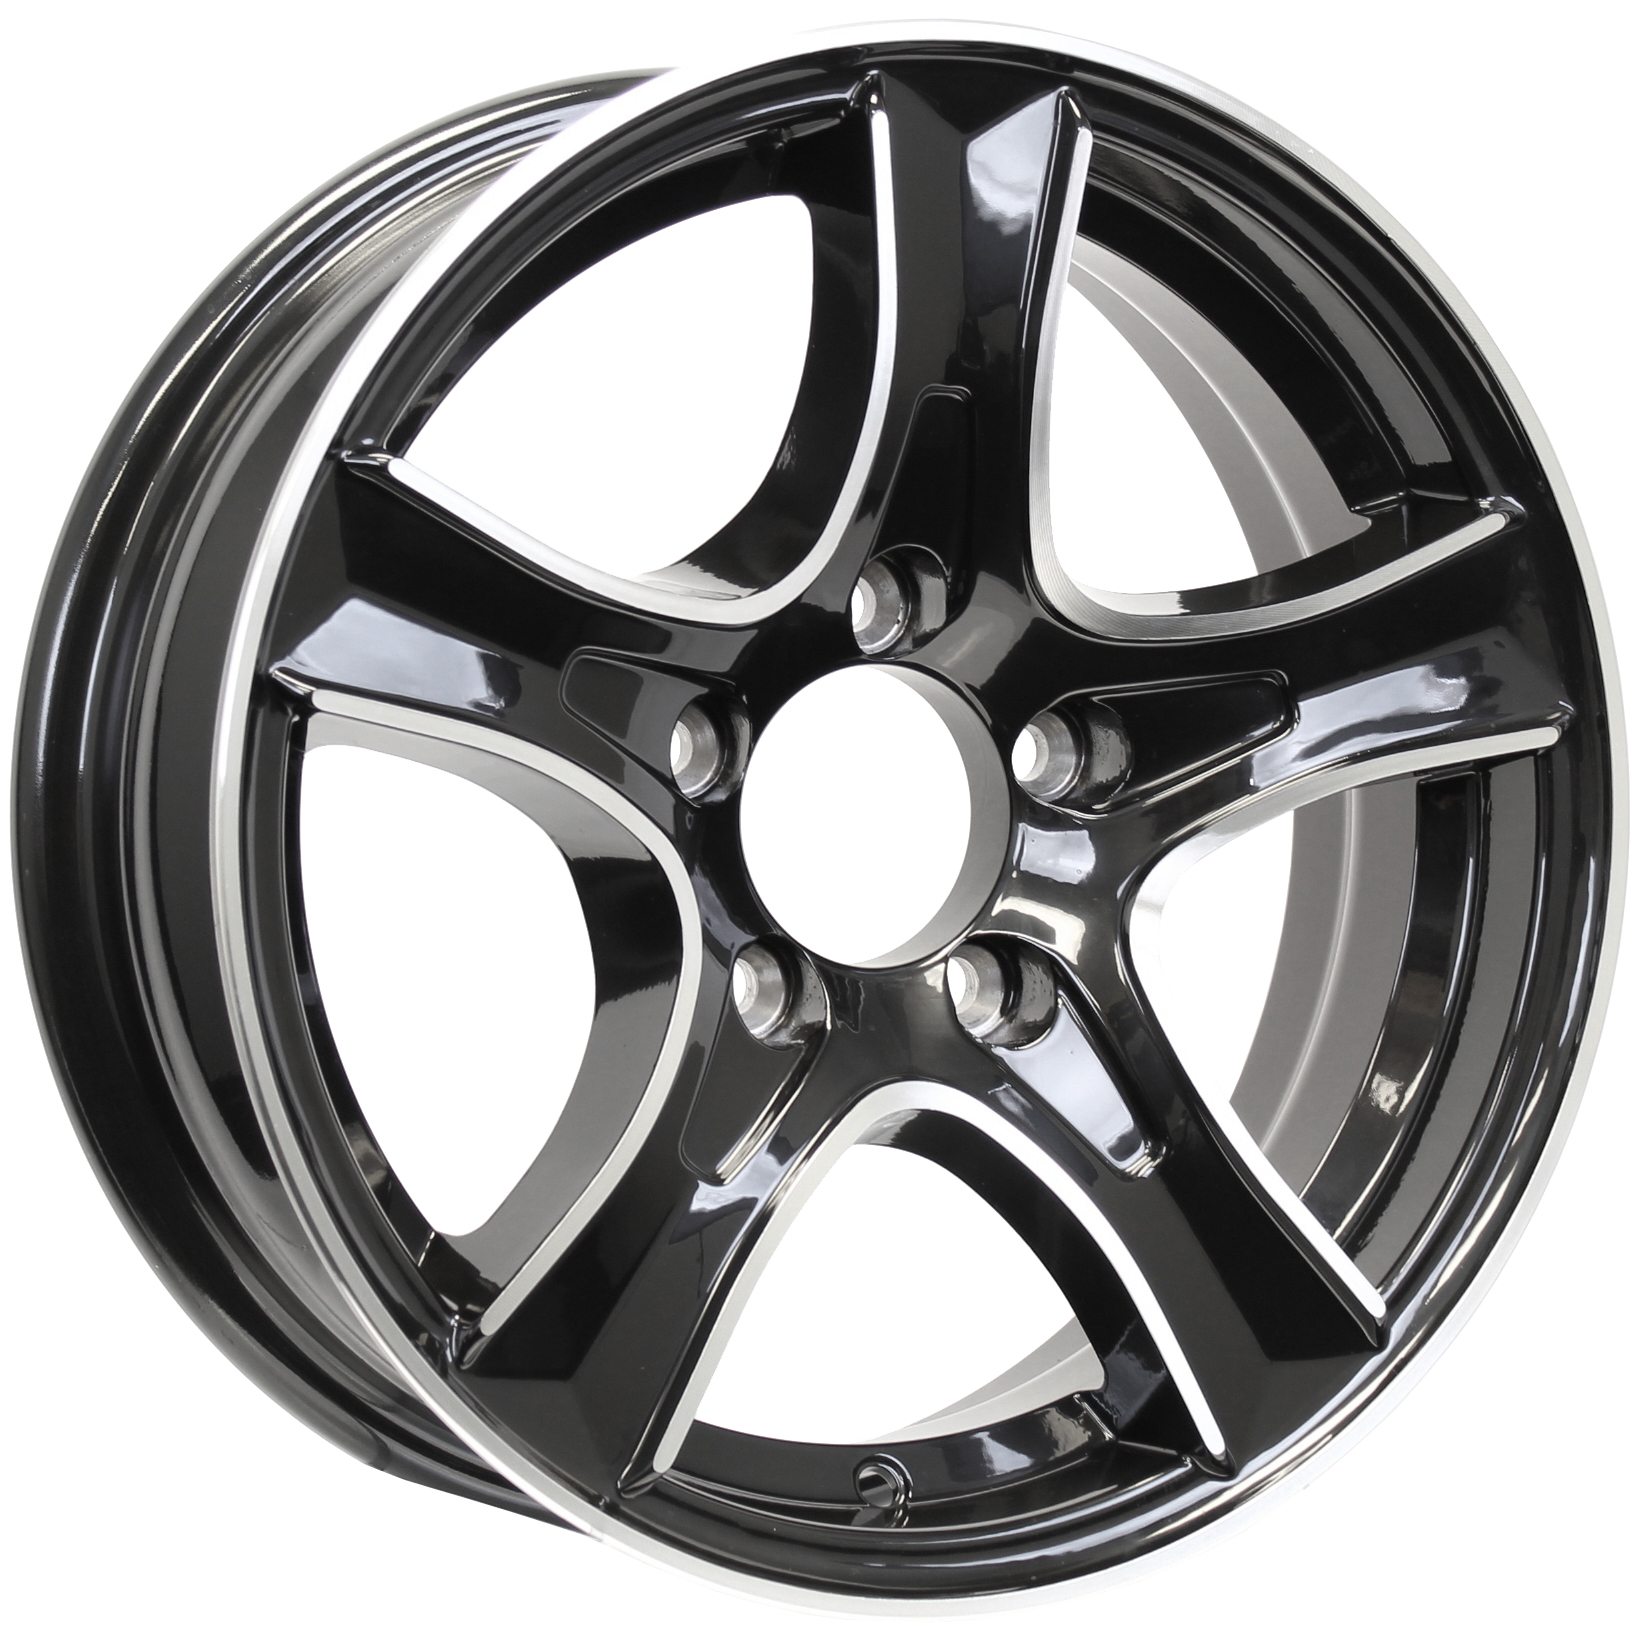 Thoroughbred 15x5 5-Lug Black Aluminum Trailer Wheel Image